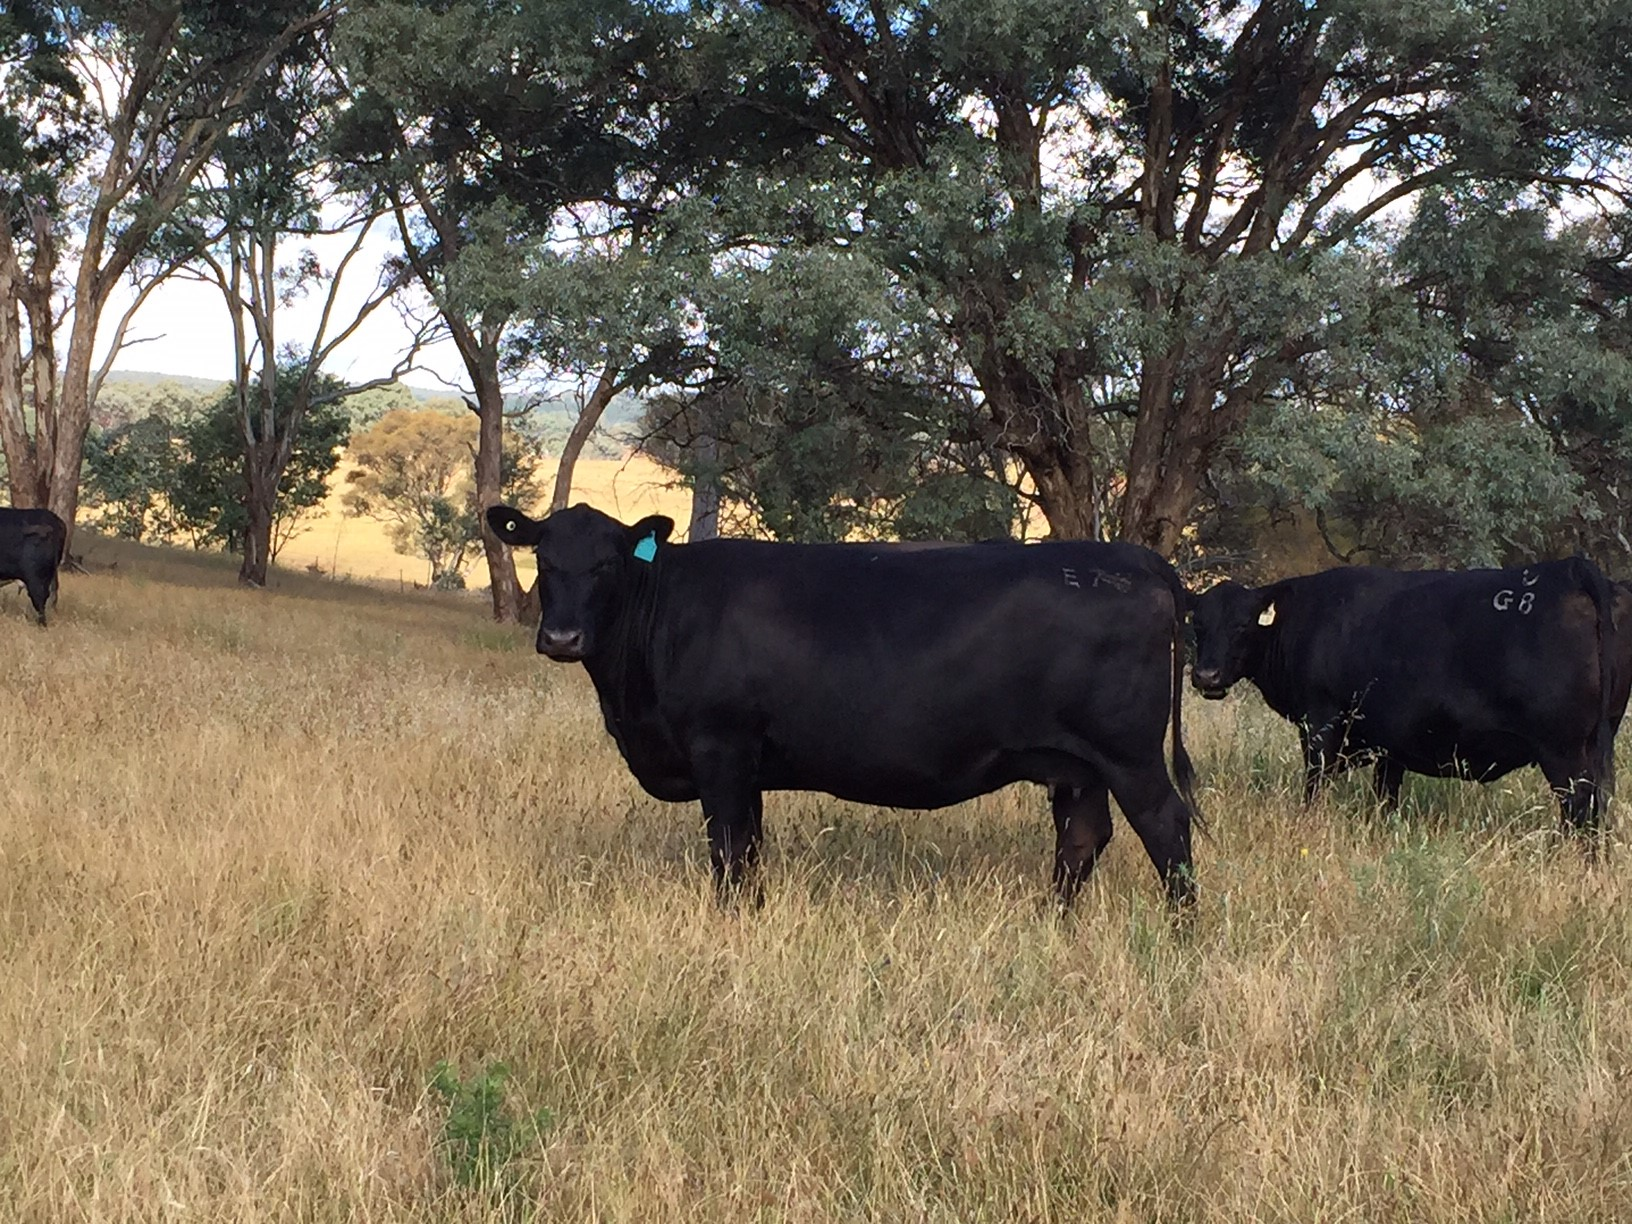 Embryo - Donor Dam E73 Genesis - Donated by Dalwhinnie Angus